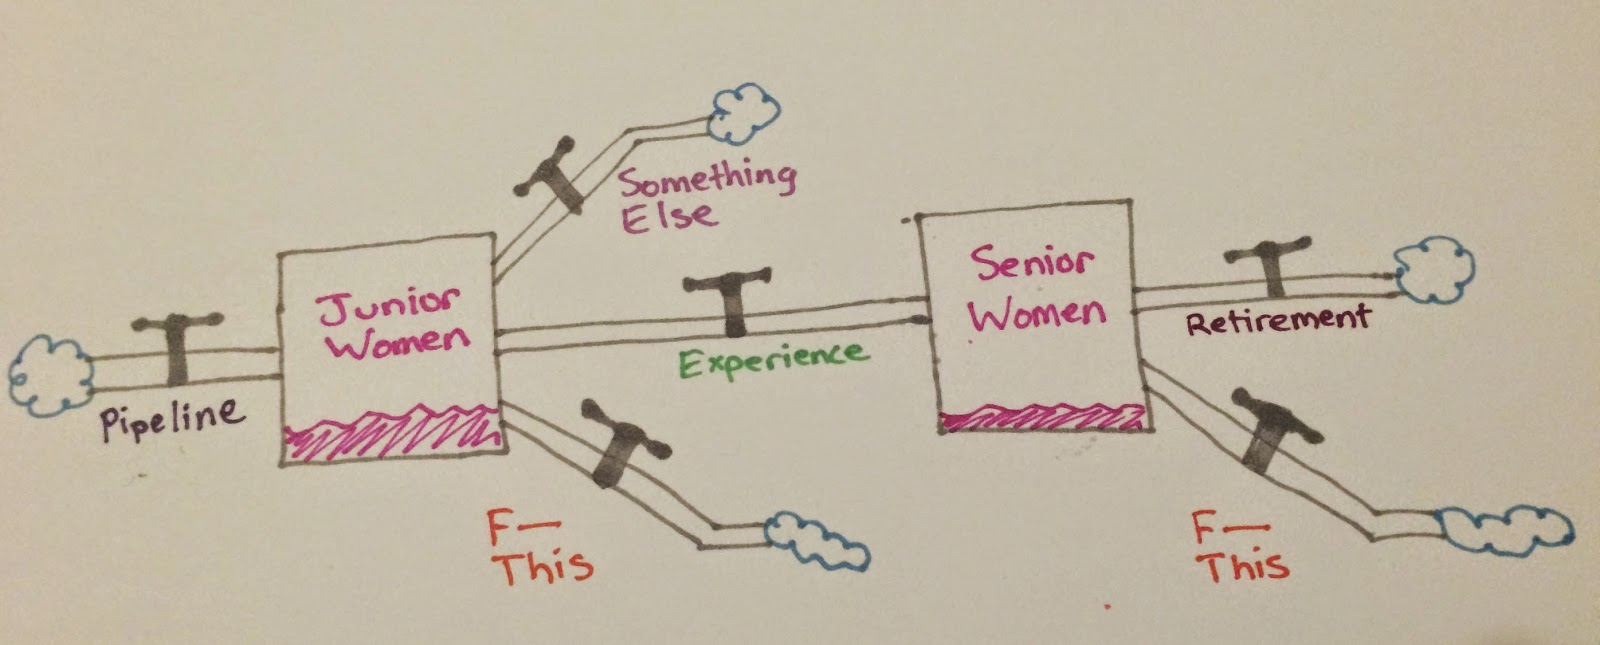 pipeline flows into a stock of Junior women. Outflows of Something Else and F This lead nowhere, while an outflow called Experience leads to a stock of Senior Women. Outflows from here are retirement and F This.